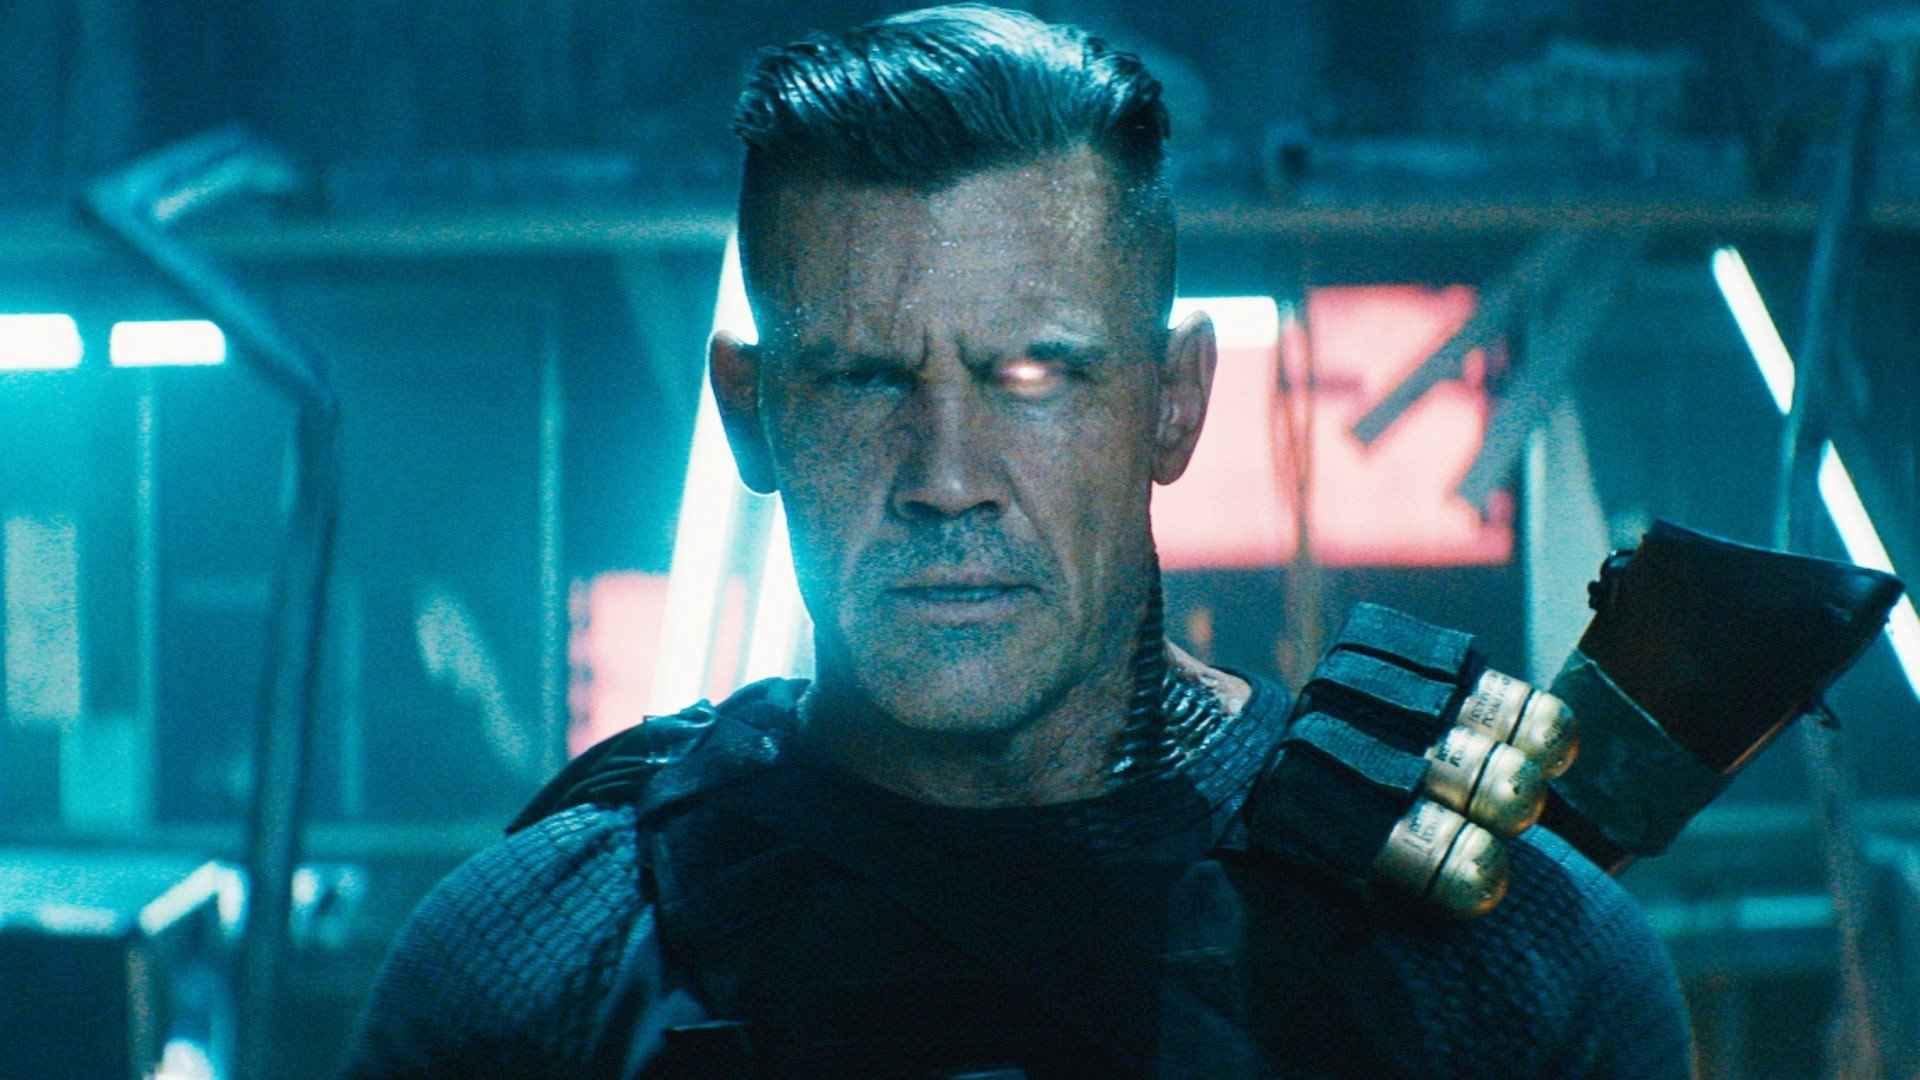 Is Josh Brolin better as Cable or Thanos? We will see.